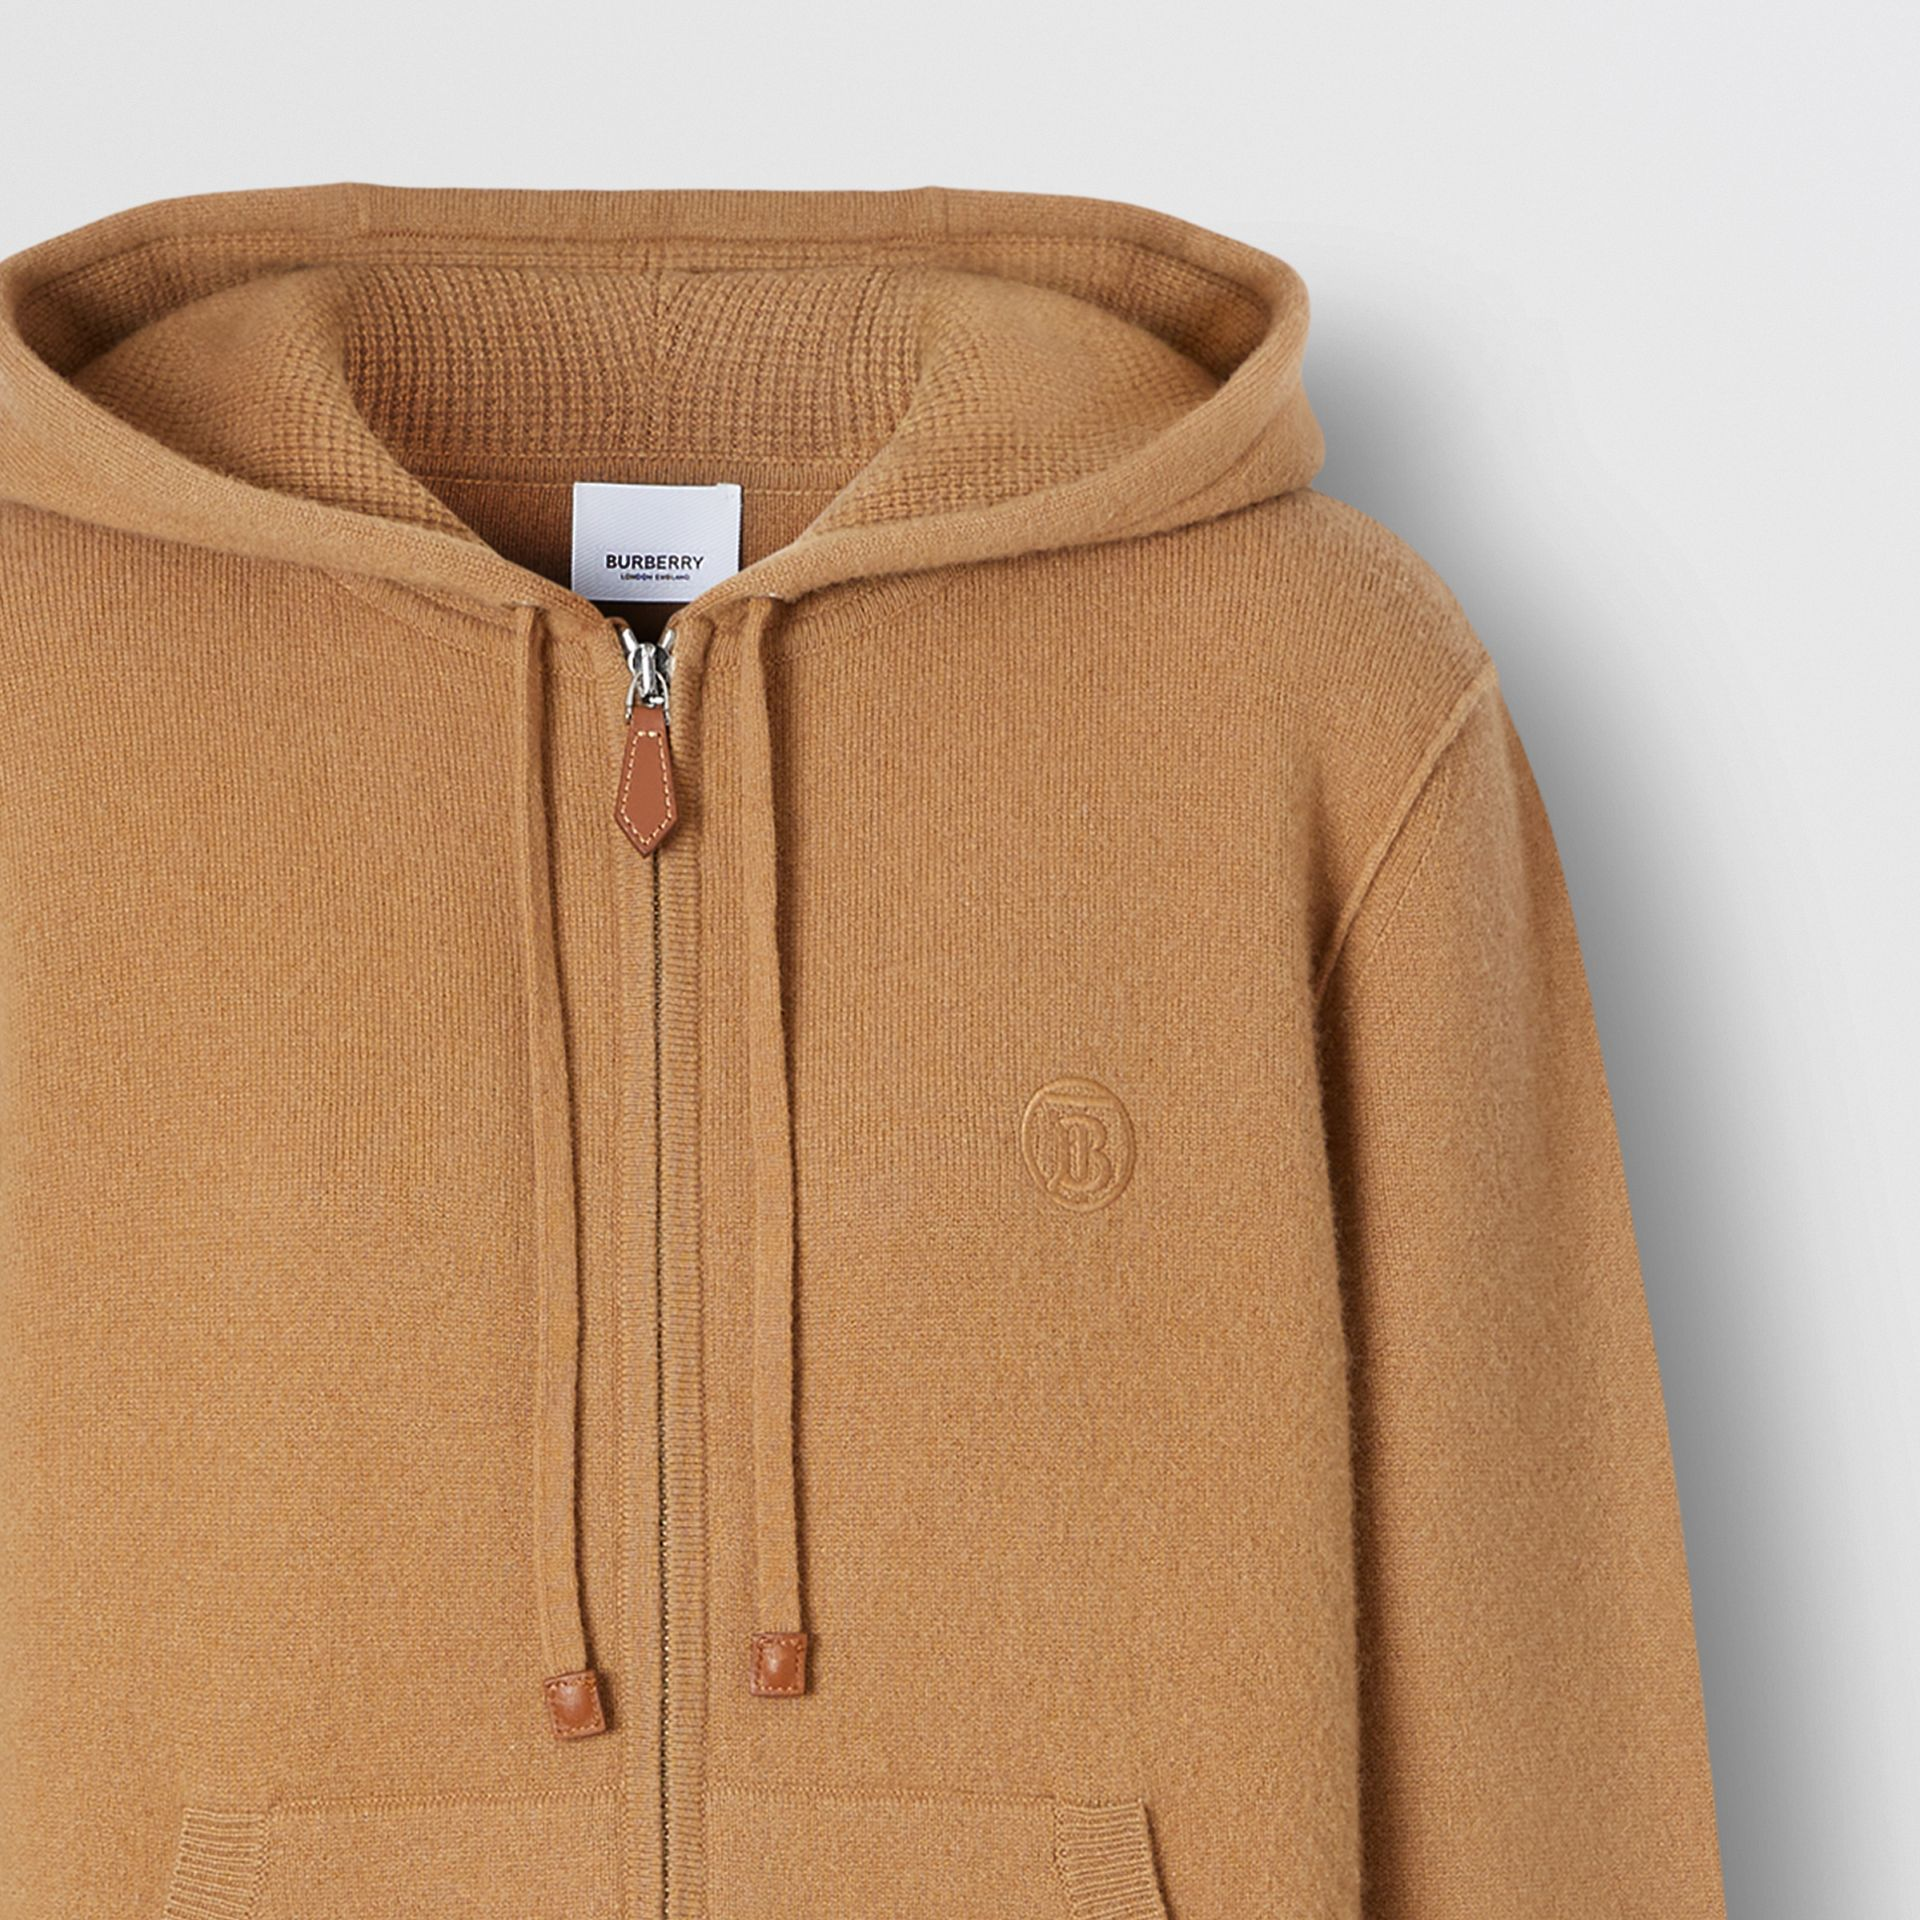 Monogram Motif Cashmere Blend Hooded Top in Camel - Women | Burberry - gallery image 6